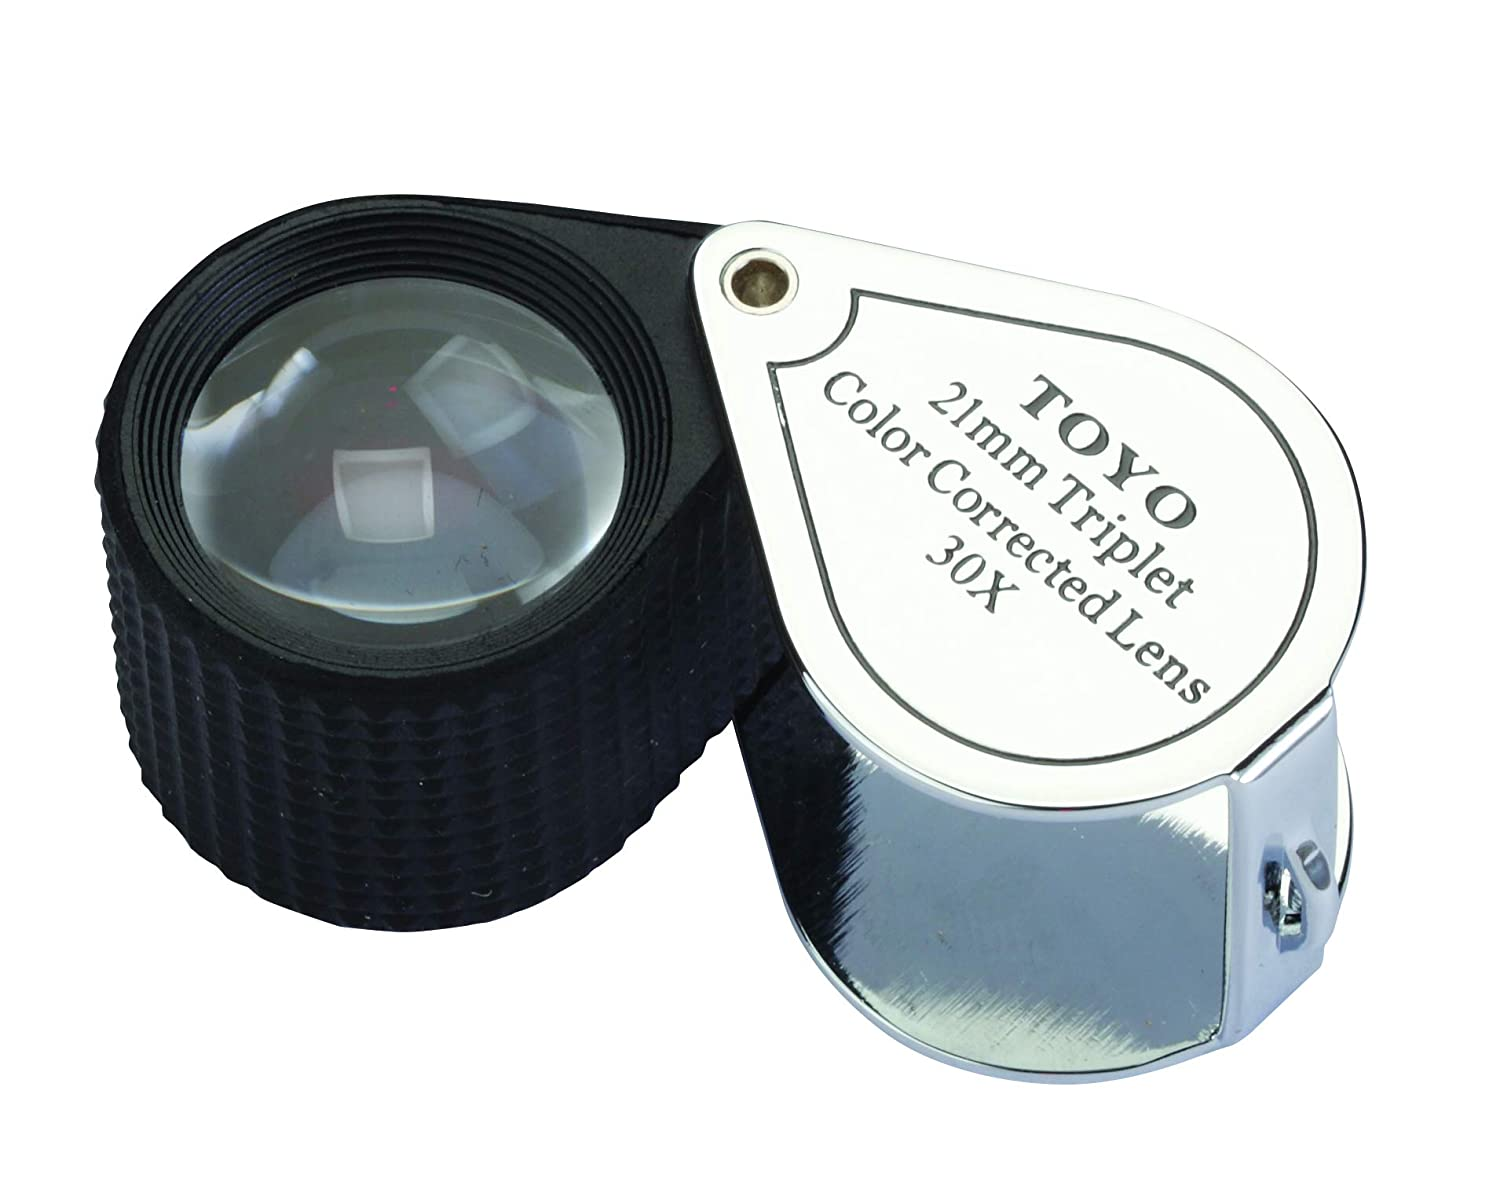 Toyo 30X21-B Professional 30X Magnifying Jeweler's Loupe with 21mm Triplet Lens, Chrome